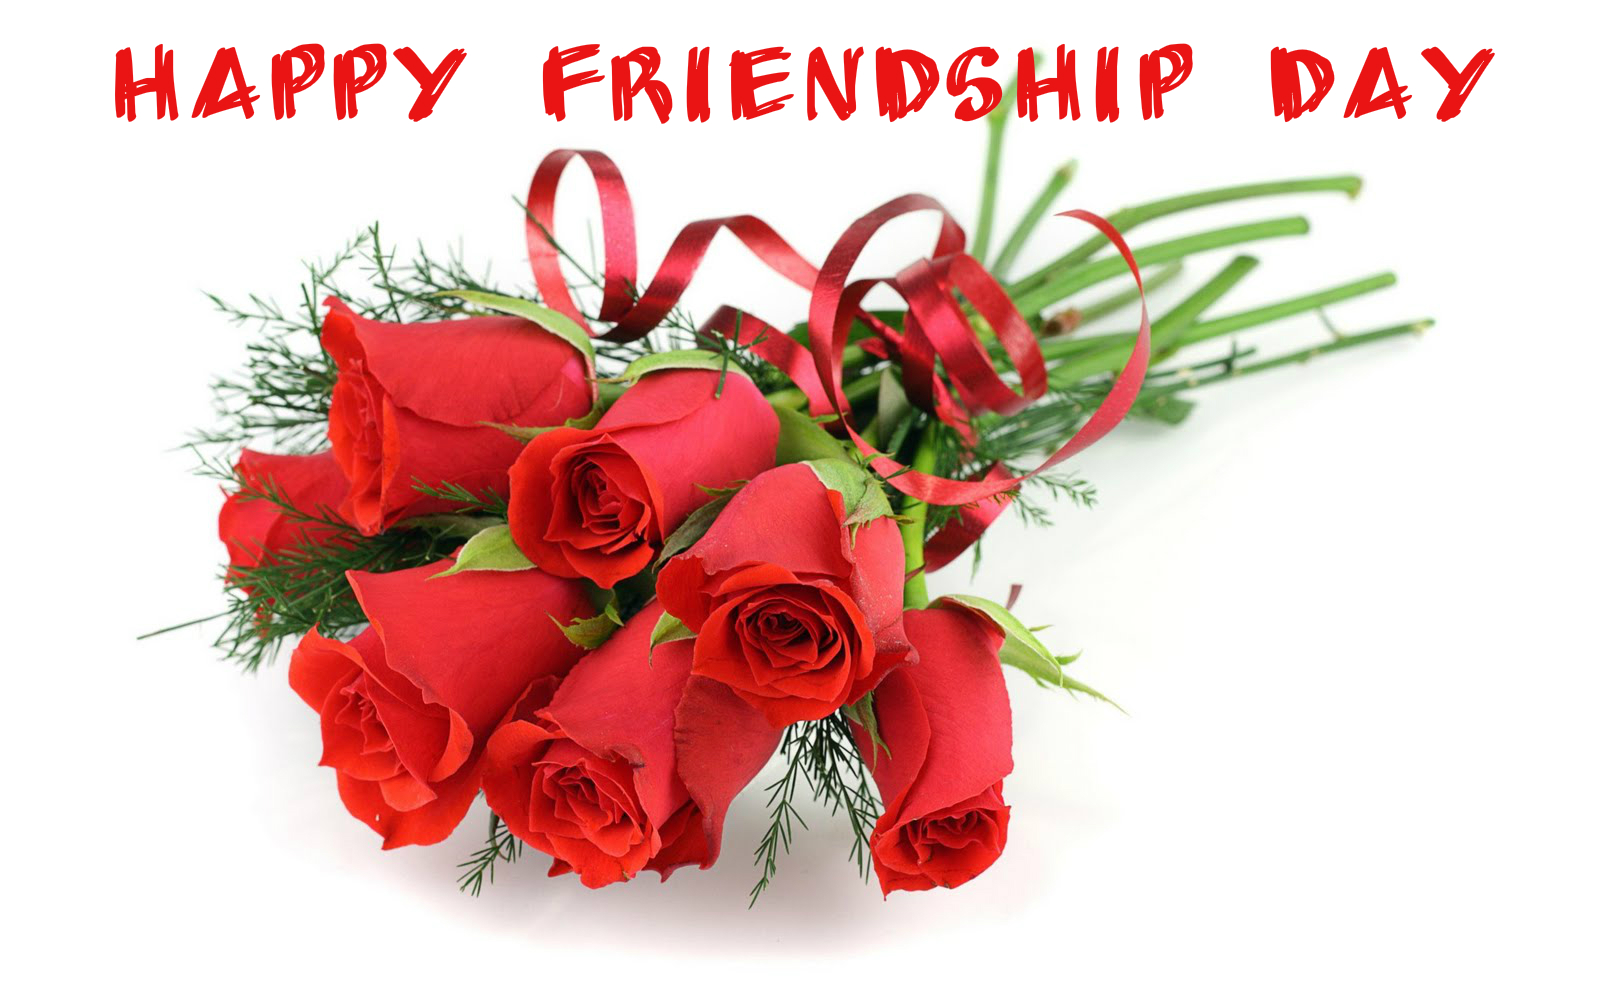 happy friendship day hd greetings background pics free download